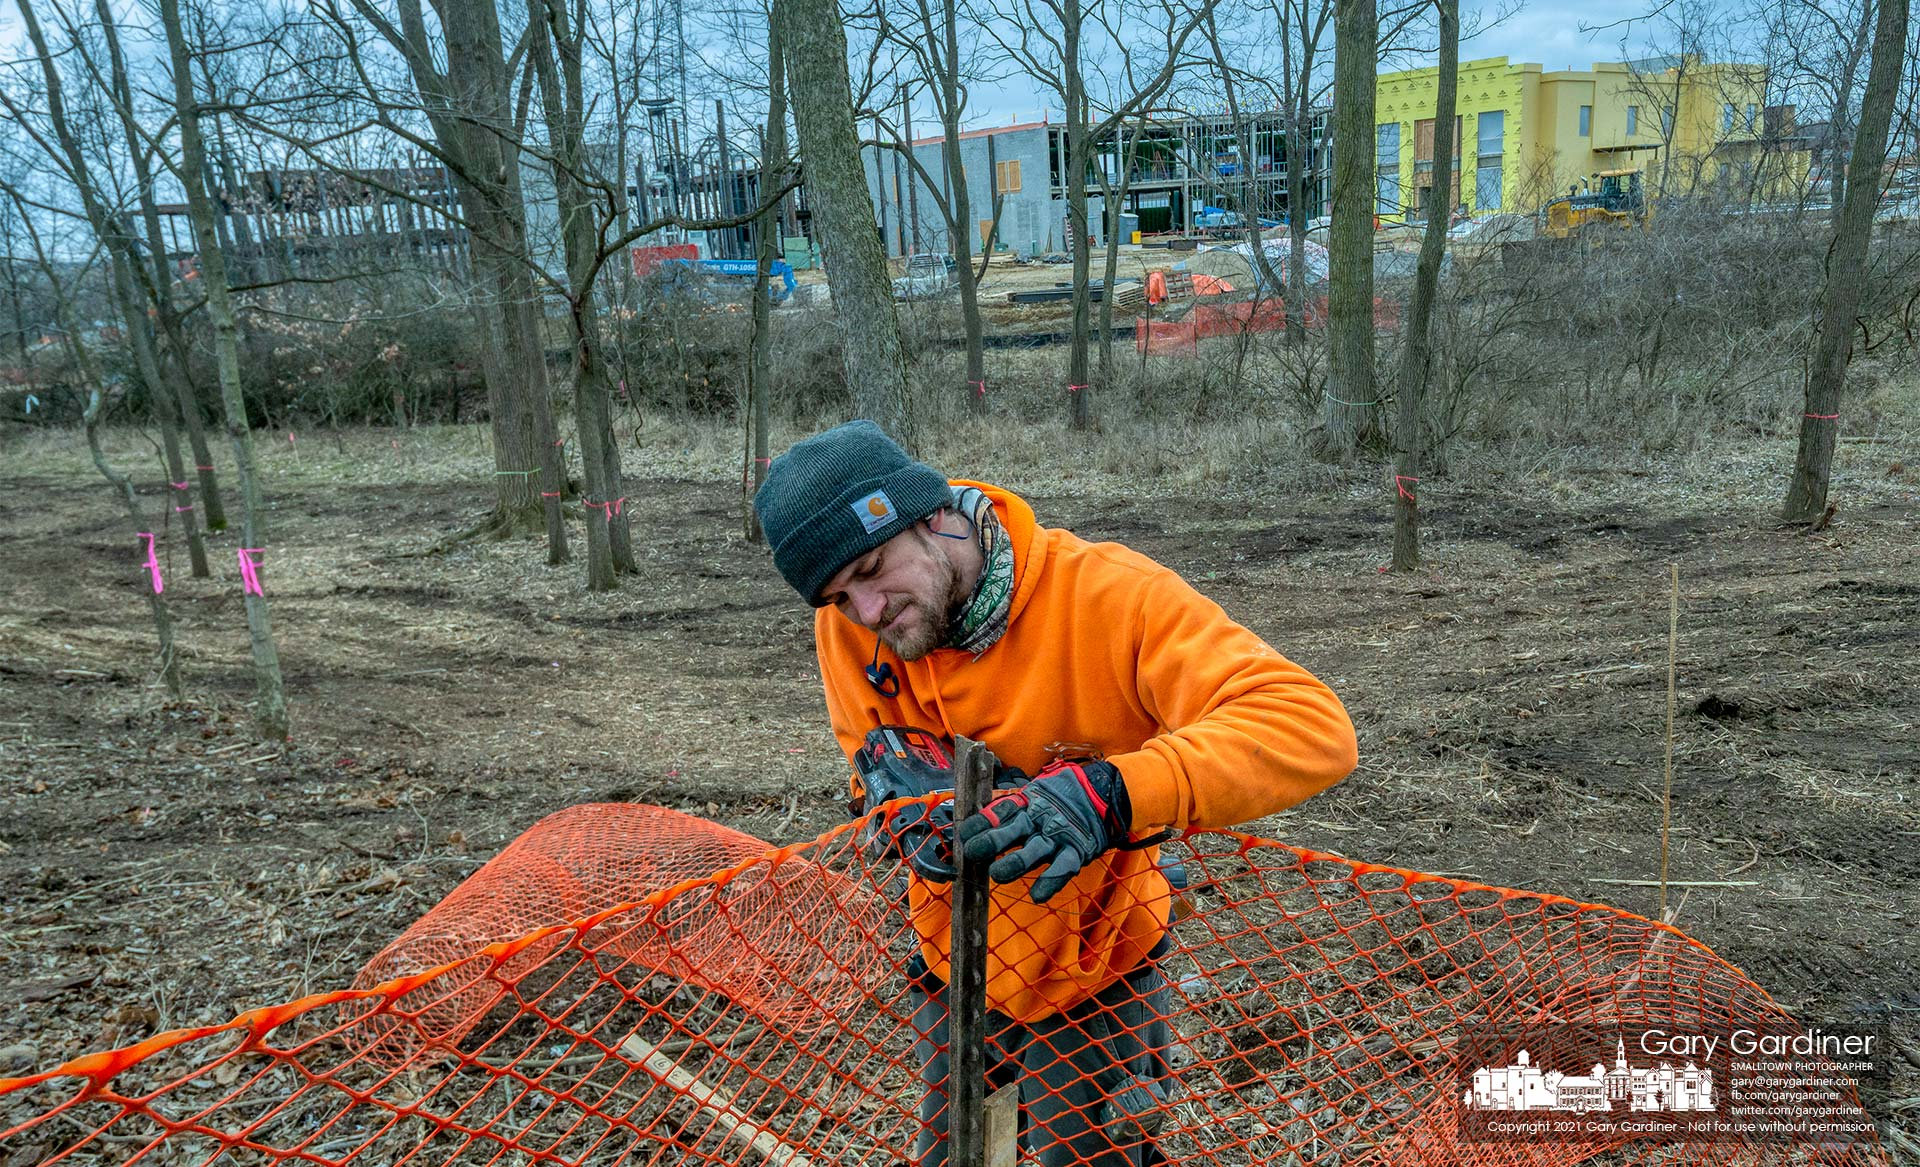 A worker builds a temporary safety fence around a section of the woods cleared at County Line and Africa Roads where a new skilled-nursing health care building is under construction. My Final Photo for March 4, 2021.